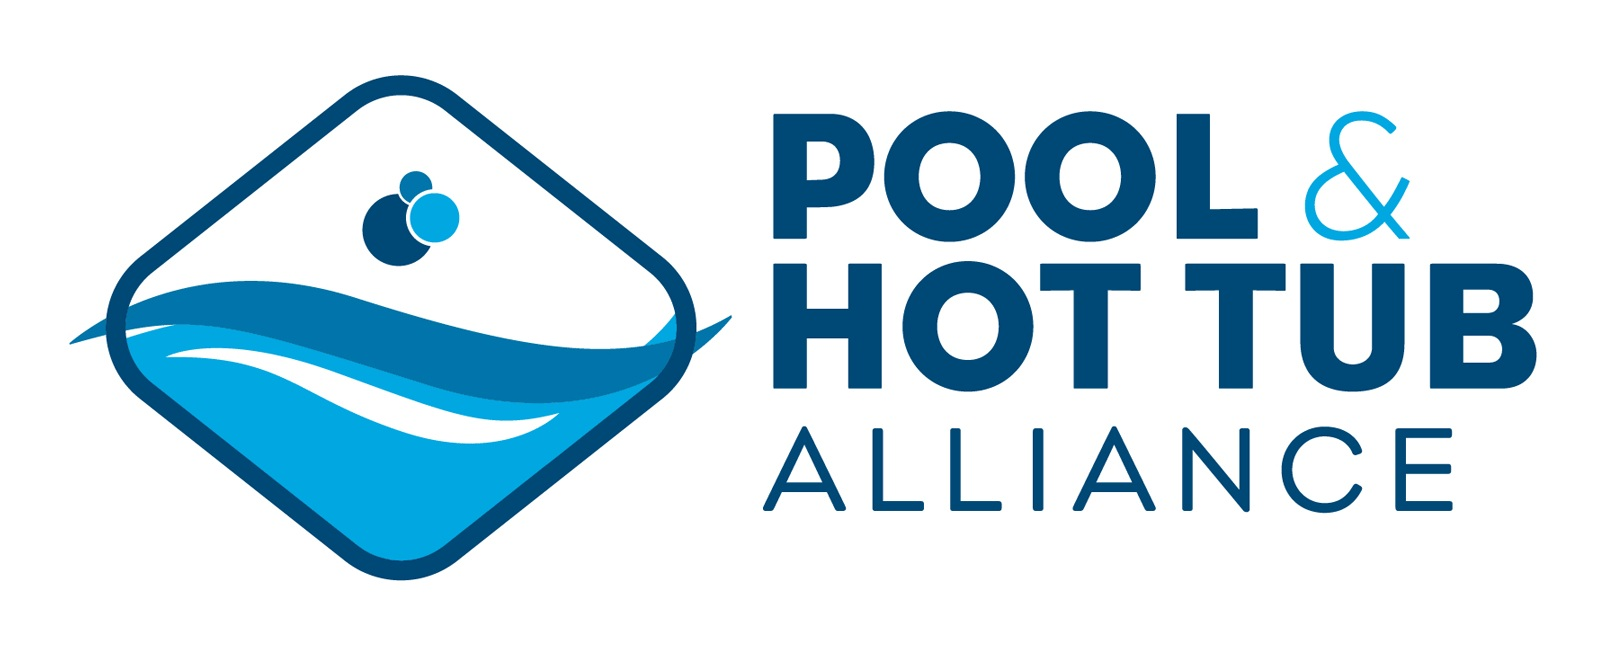 Pool & Hot Tub Alliance - Dedicated to the growth and development of its members' businesses and to promoting the enjoyment and safety of pools, spas and hot tubs to consumers, Pool & Hot Tub Alliance offers a range of services that include:• Setting and advocating industry standards that serve the interests of the consumer and the industry• Advancing technical competence• Convening leaders around important industry issues• Promoting professionalism• Serving consumer interests and public safety• Protecting the interests of the pool, spa and hot tub industryFor more than half a century, Pool & Hot Tub Alliance has been serving members and the public with critical industry knowledge that ranges from sound regulatory practice to industry trends and consumer attitudes. Since 1983, Pool & Hot Tub Alliance is the only industry organization accredited by the American National Standards Institute as the recognized Standards Development Organization to promote and develop the nation's standards for swimming pools and hot tubs.